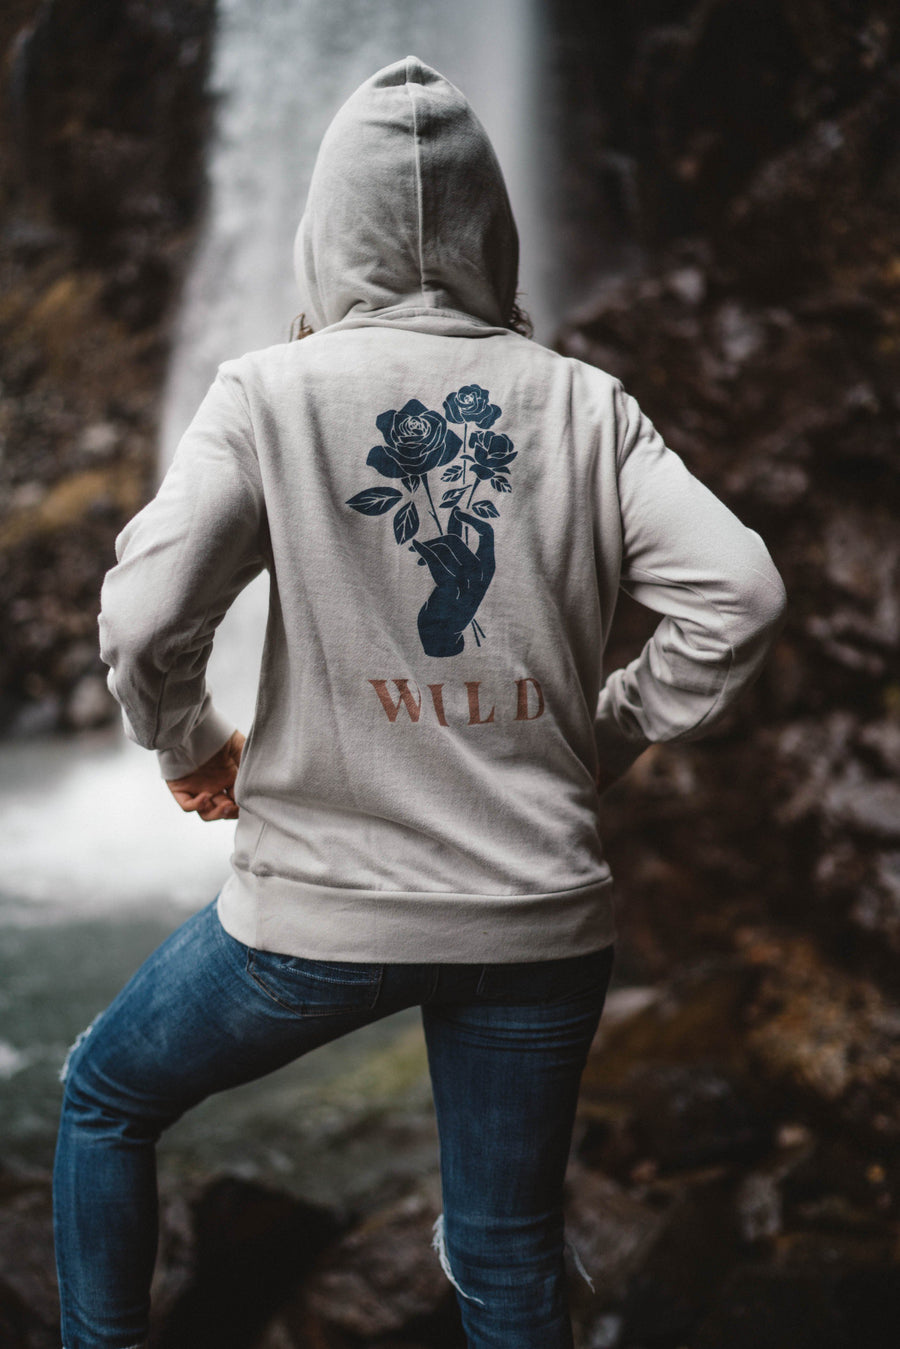 Keeper of The Wild Hoodie - Wondery, A Parks Apparel Brand